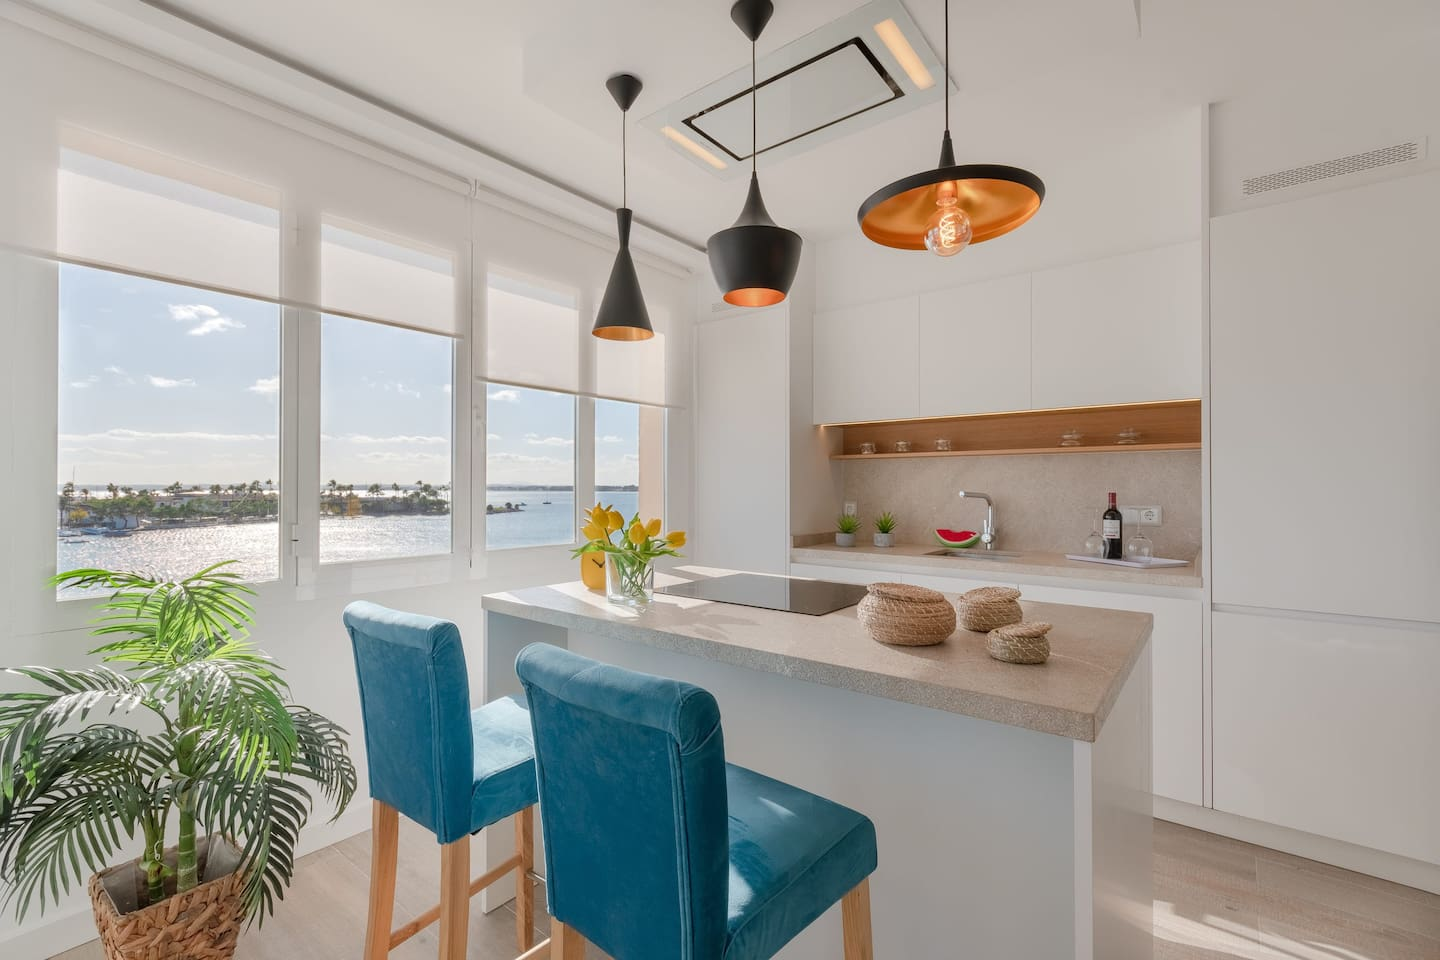 Kitchen fully equiped with great sea views!